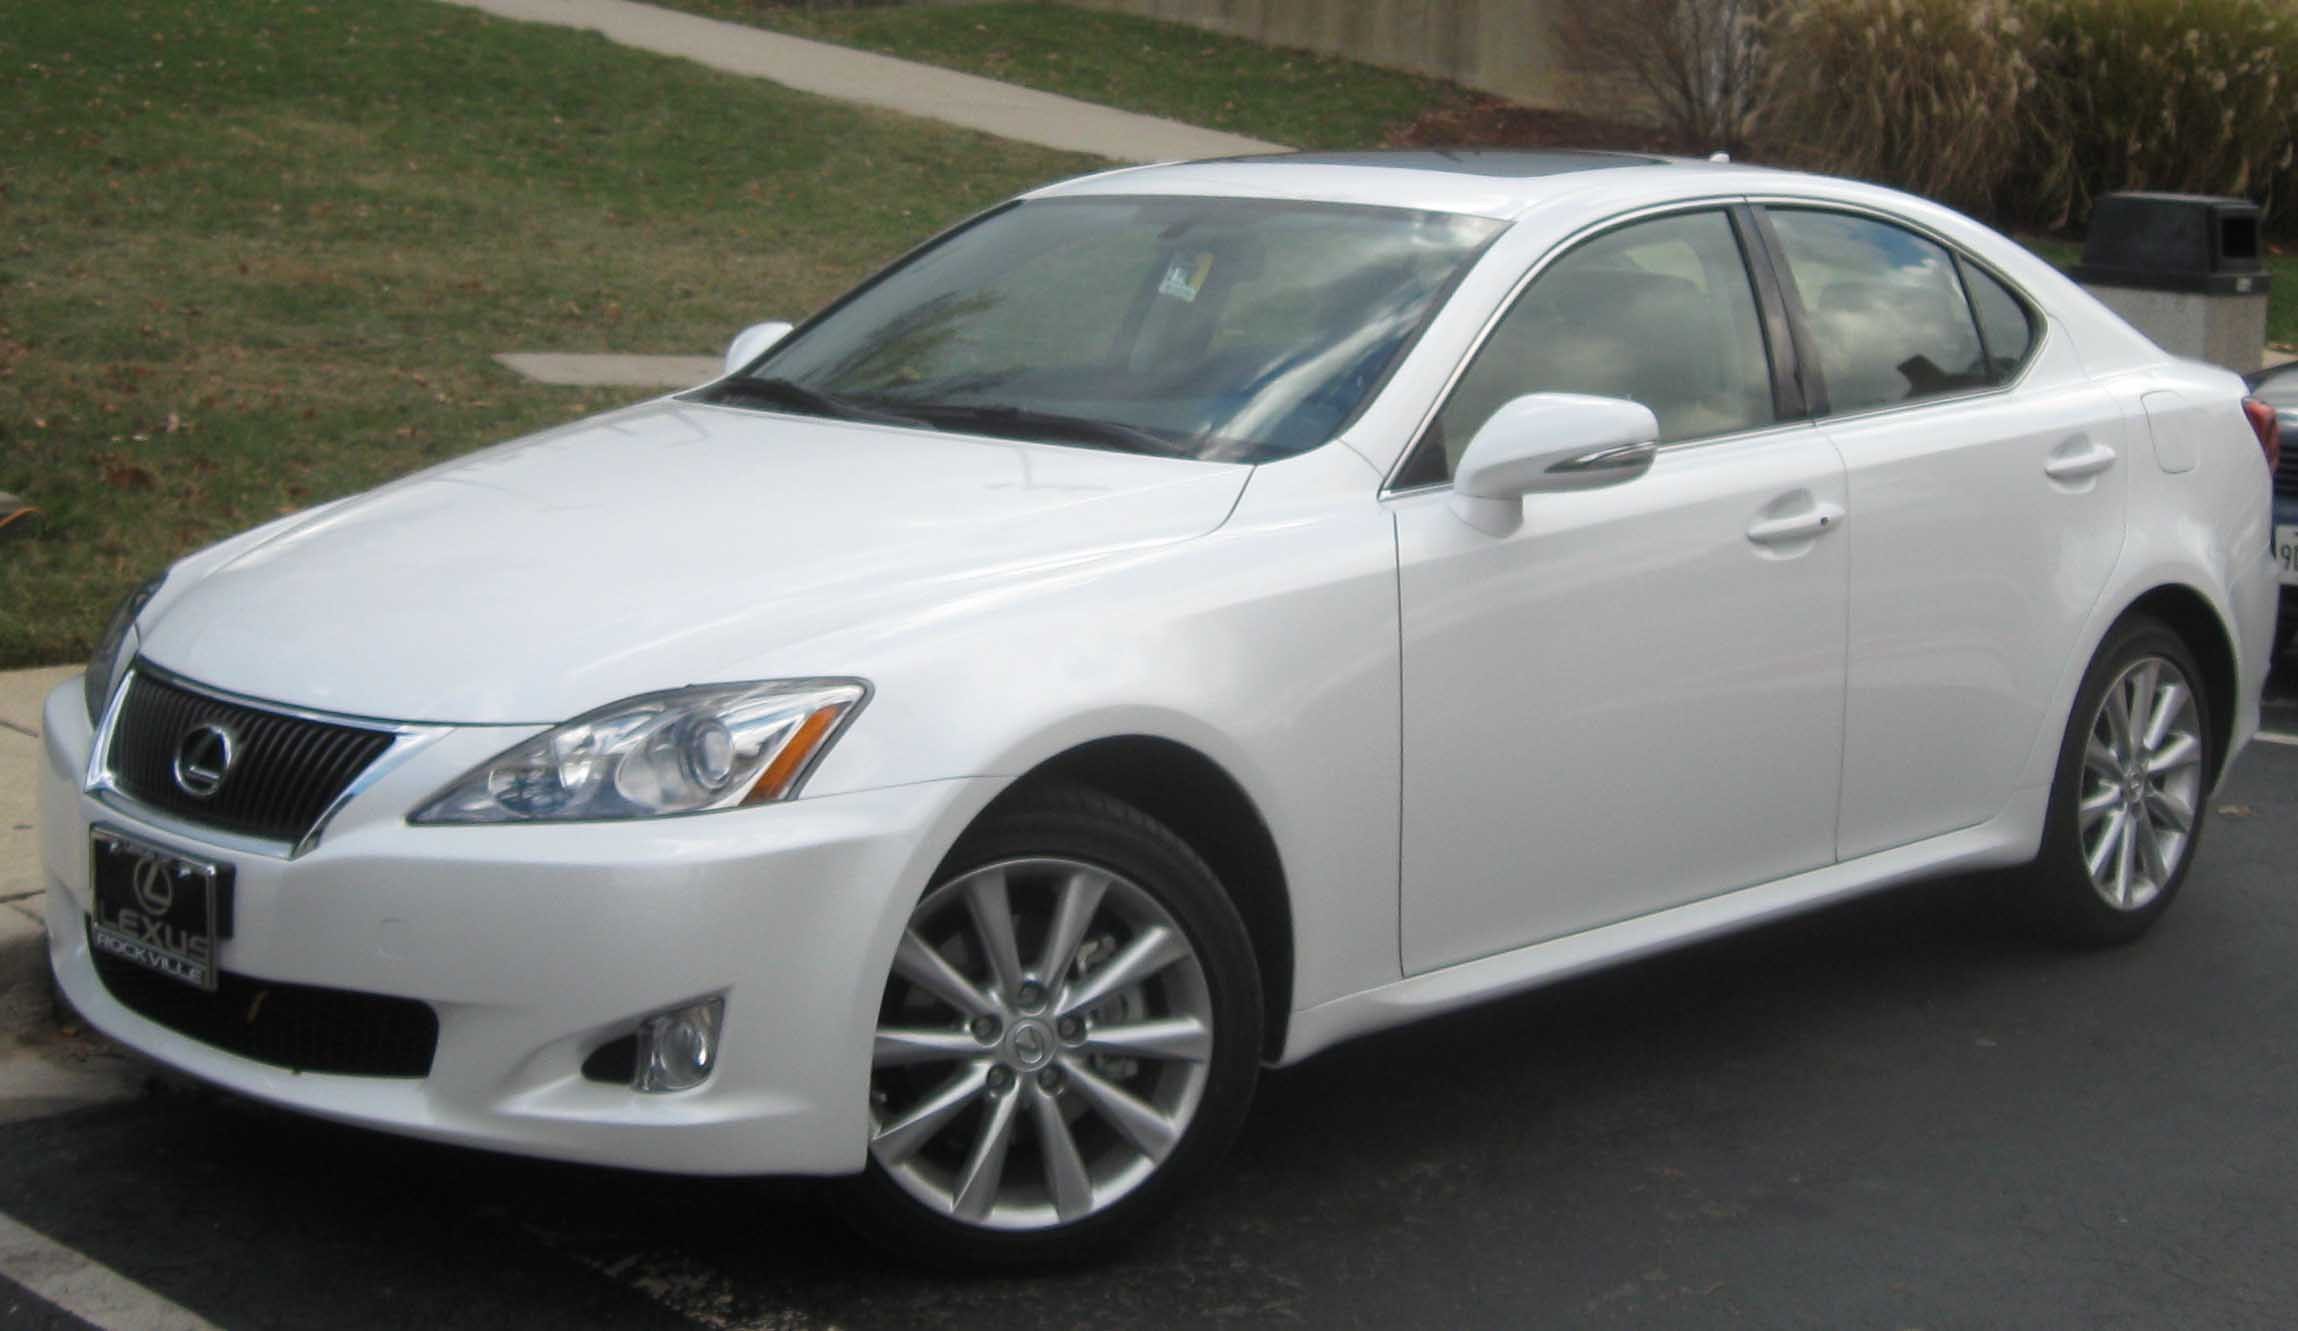 File:Lexus IS250 AWD .jpg - Wikimedia Commons